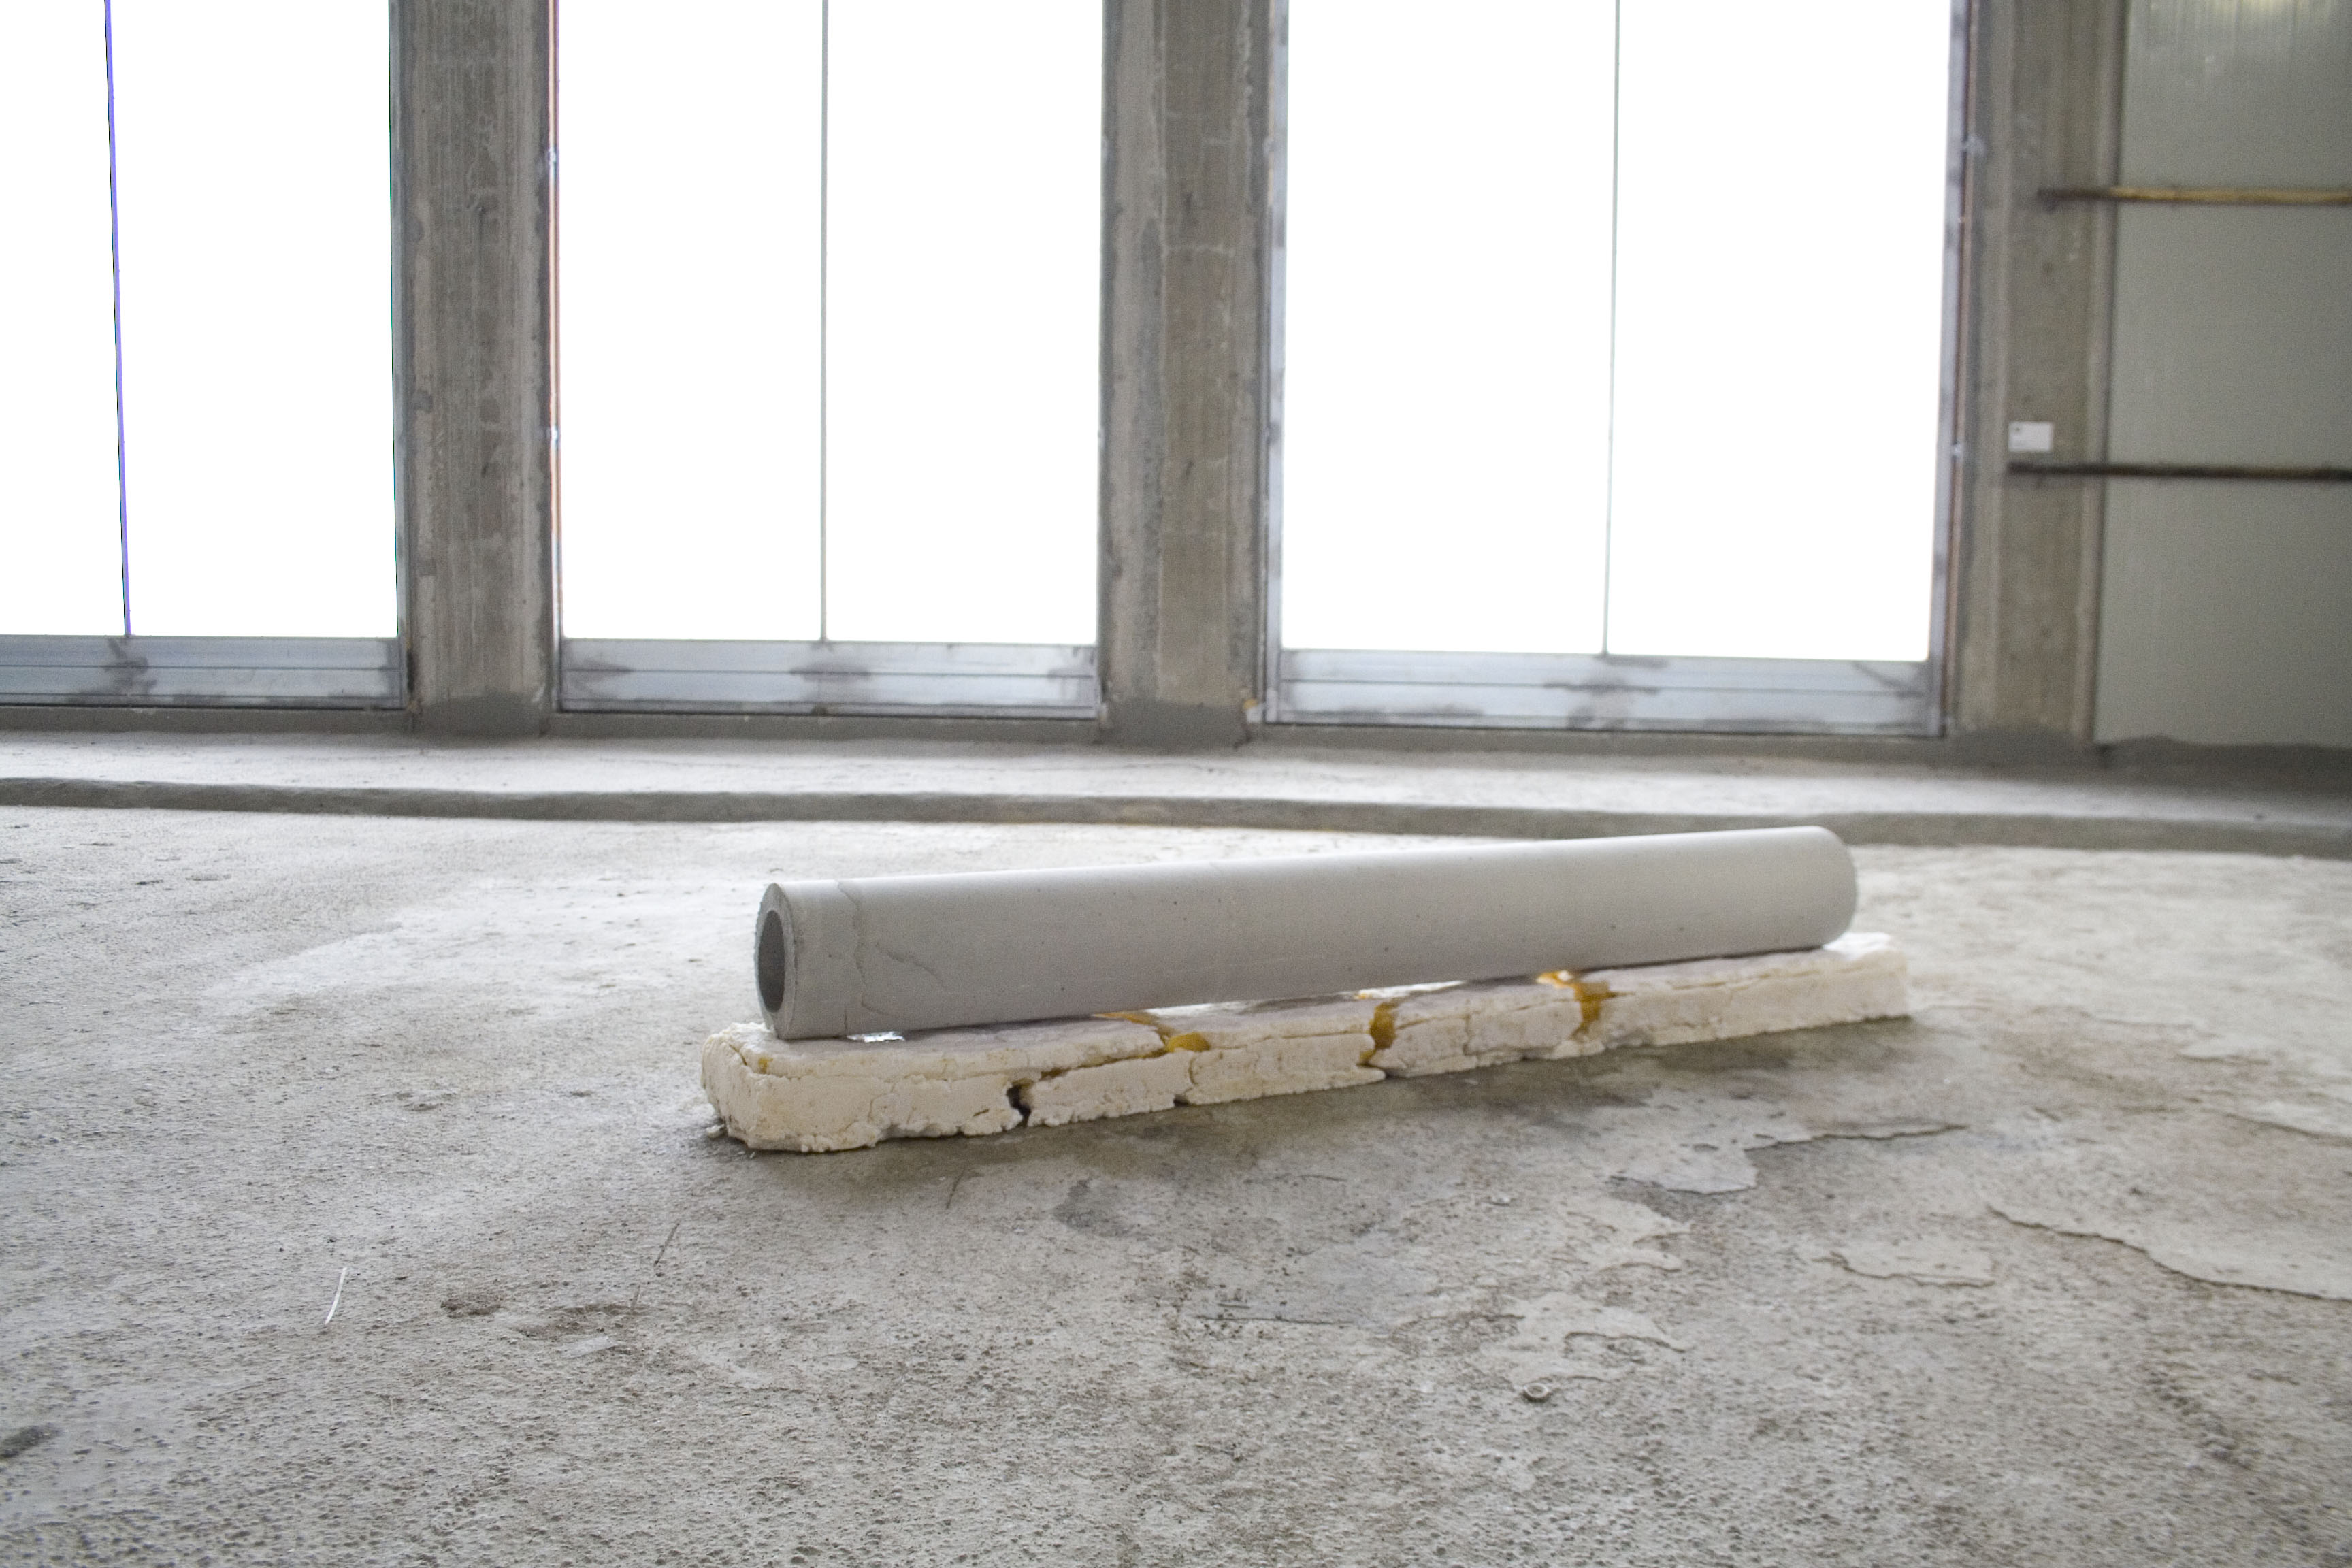 Tomaso De Luca - Floating - 2012 - courtesy l'artista e galleria Monitor, Roma - photo Giorgio Benni